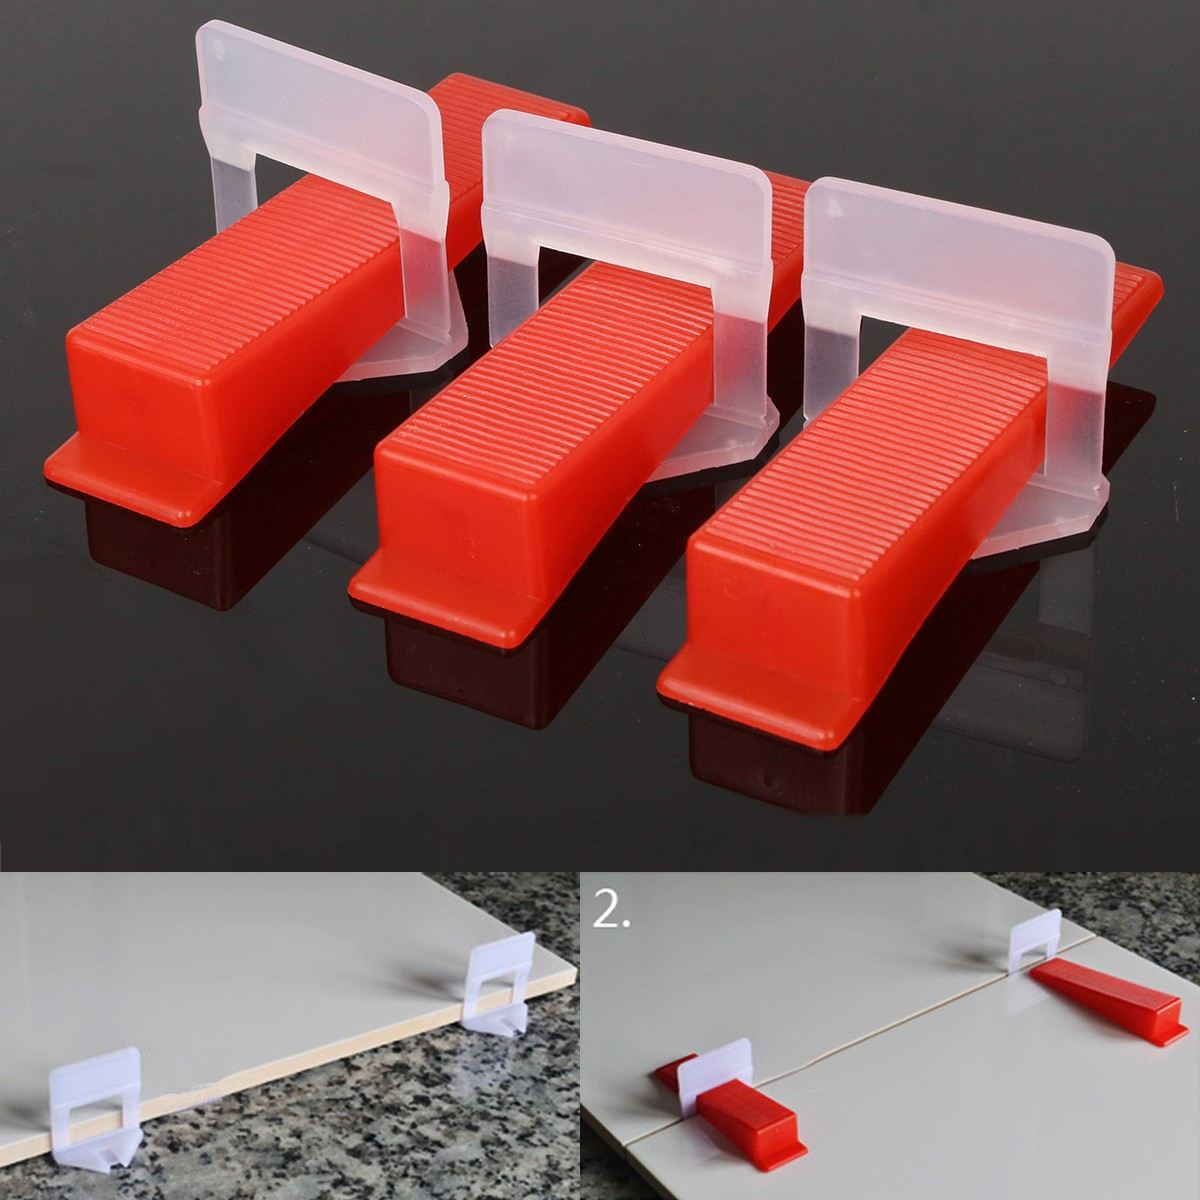 High Quality Tile Leveling System 50x Clips 50 Wedges Plastic Spacers Tiling Tools Red White